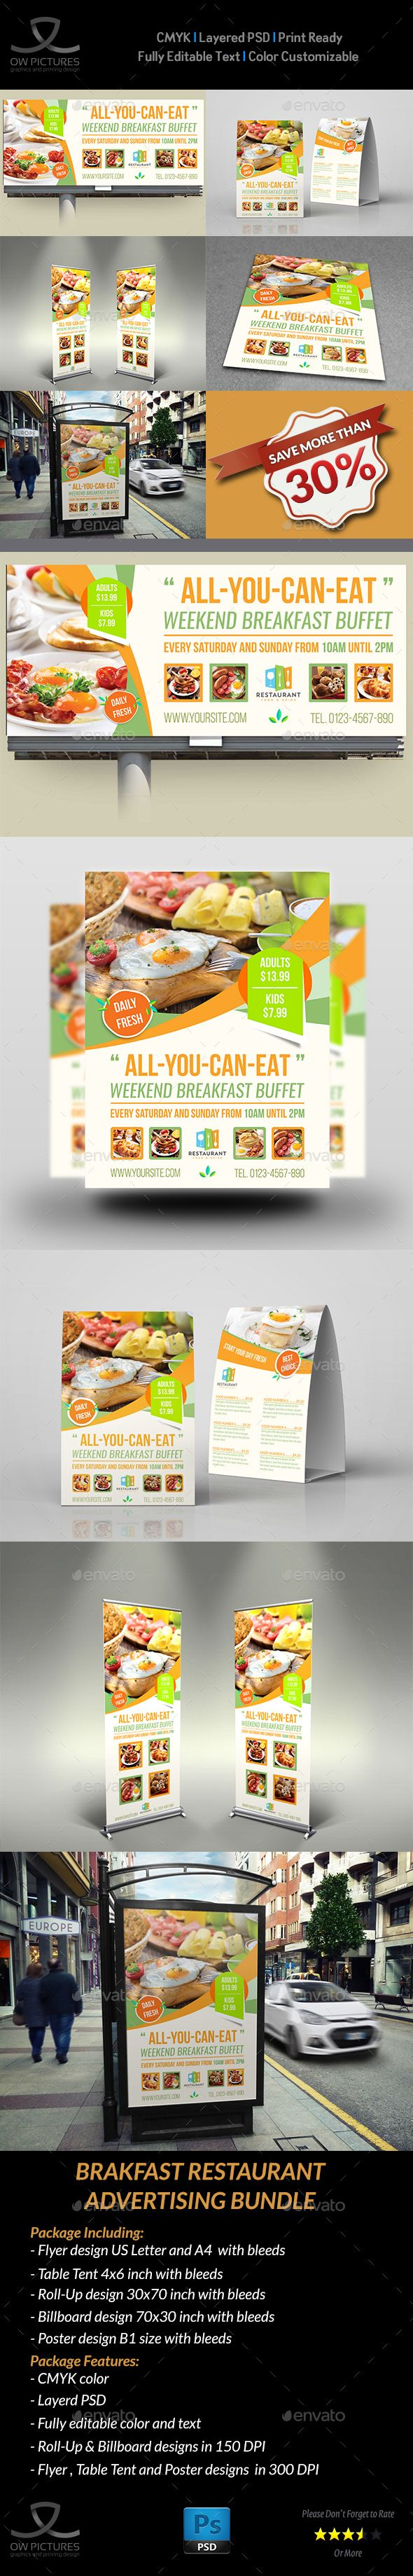 Breakfast Restaurant Advertising Package